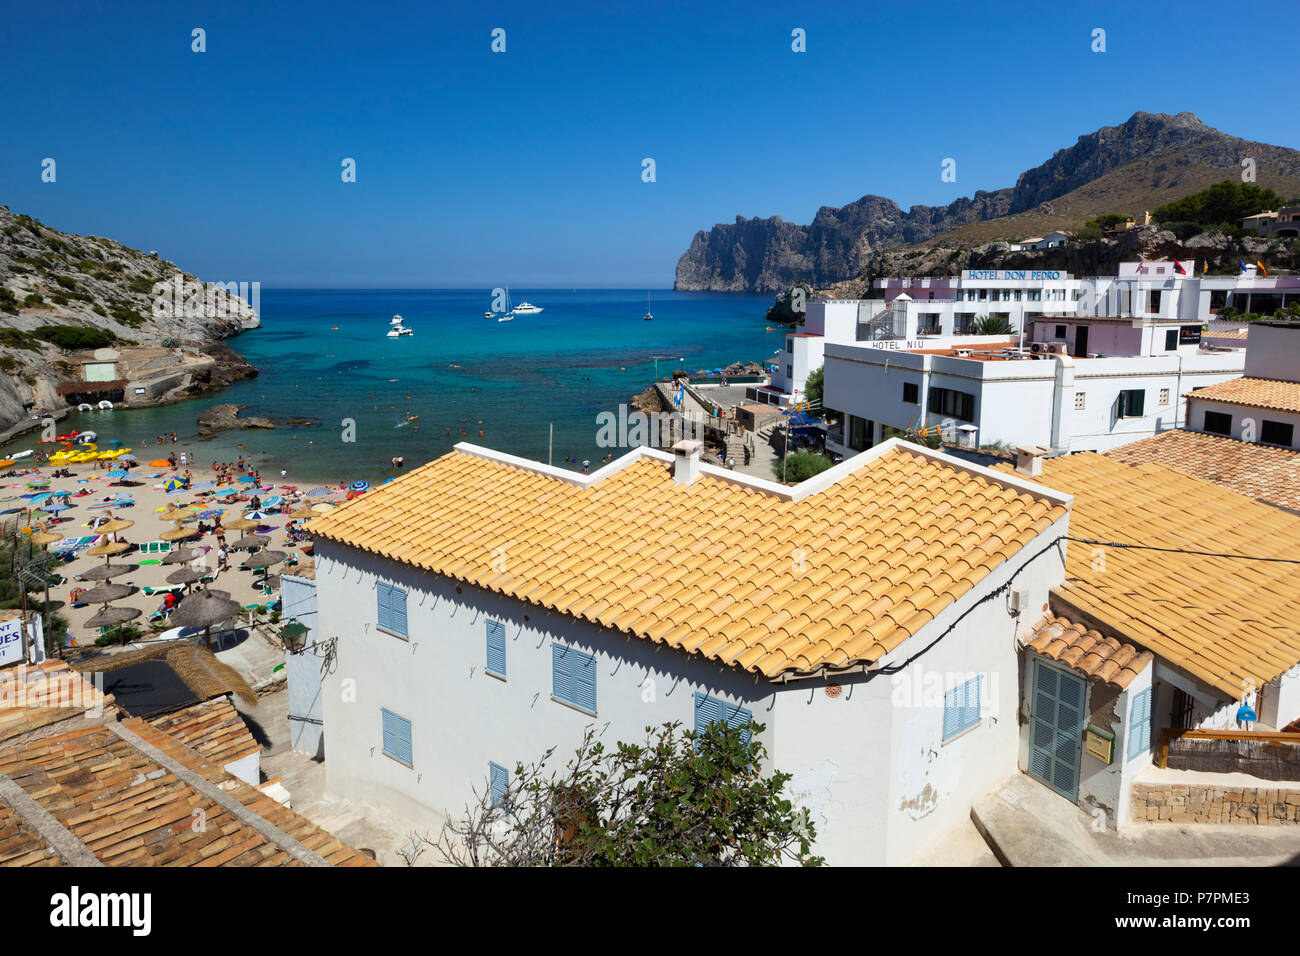 View over resort of Cala San Vincente in summer - Stock Image